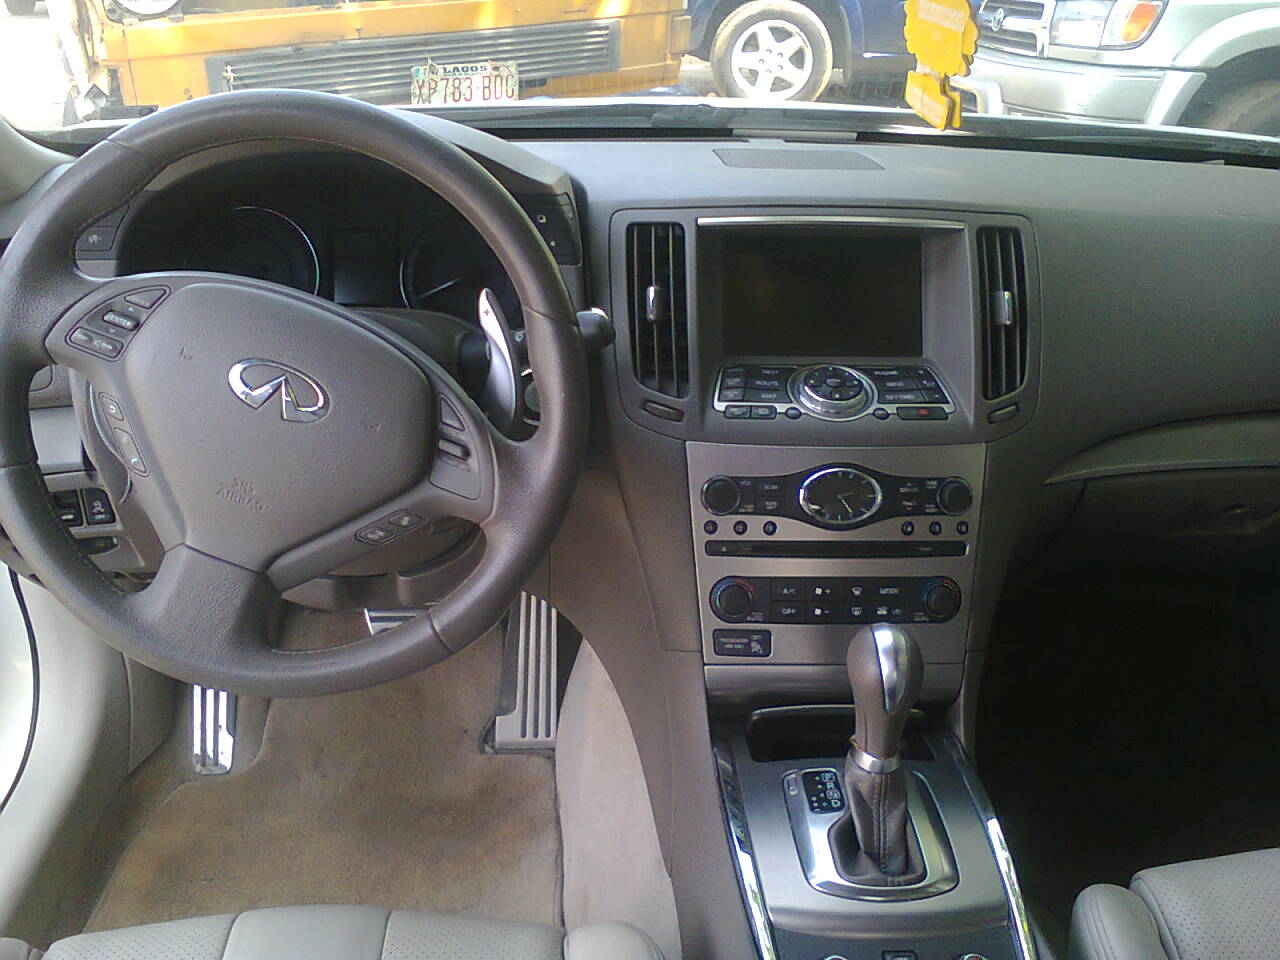 infinity 2011. re: 2011 infinity g37x s tokunbo for sale by theo07: 8:10am on oct 23, 2014